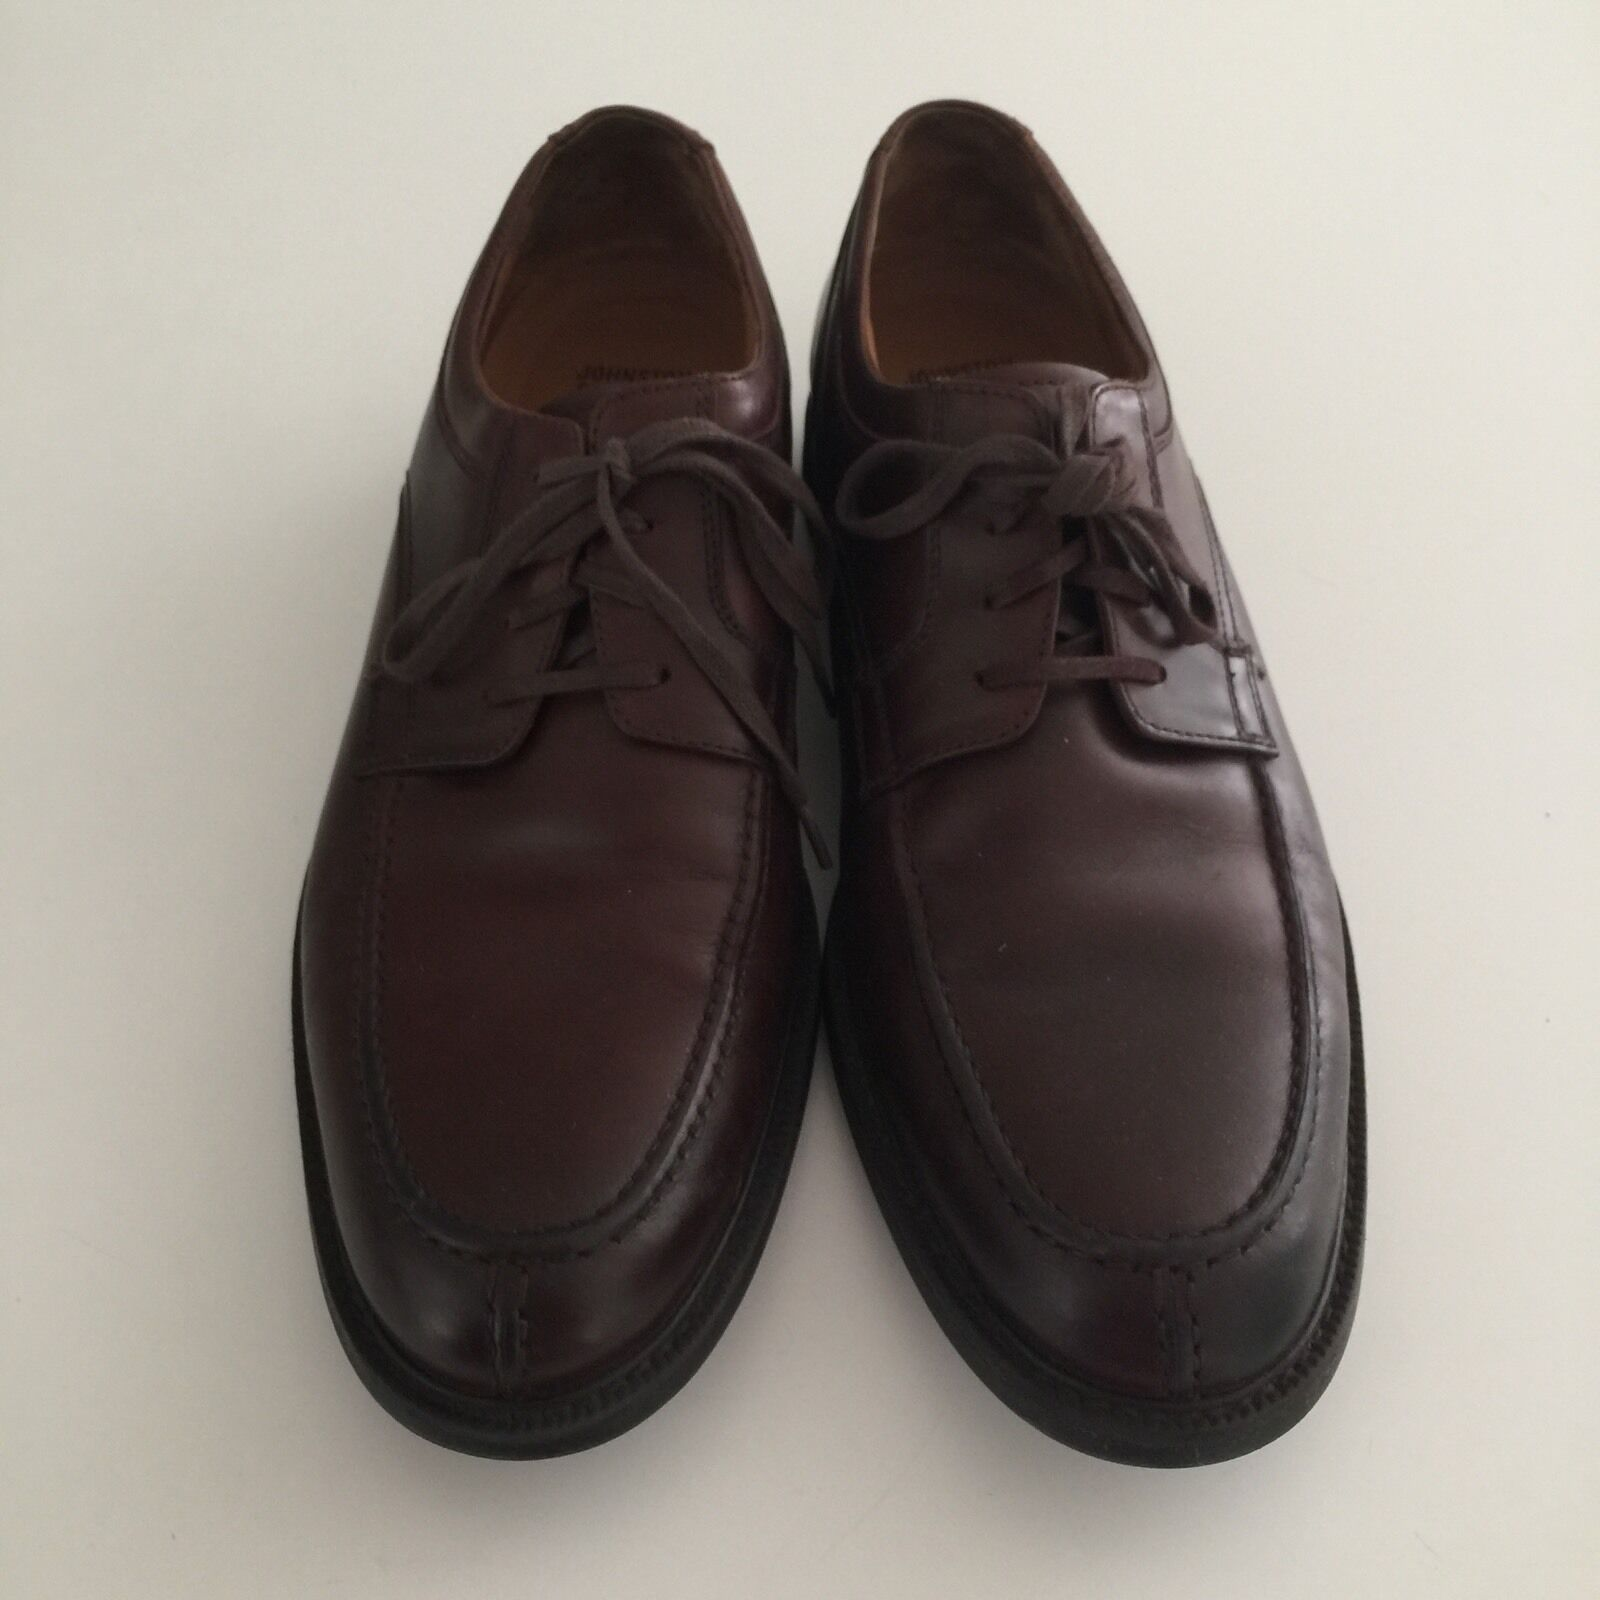 Men's shoes Size 9 M Dark Brown  Leather Lace Up Johnston & Murphy